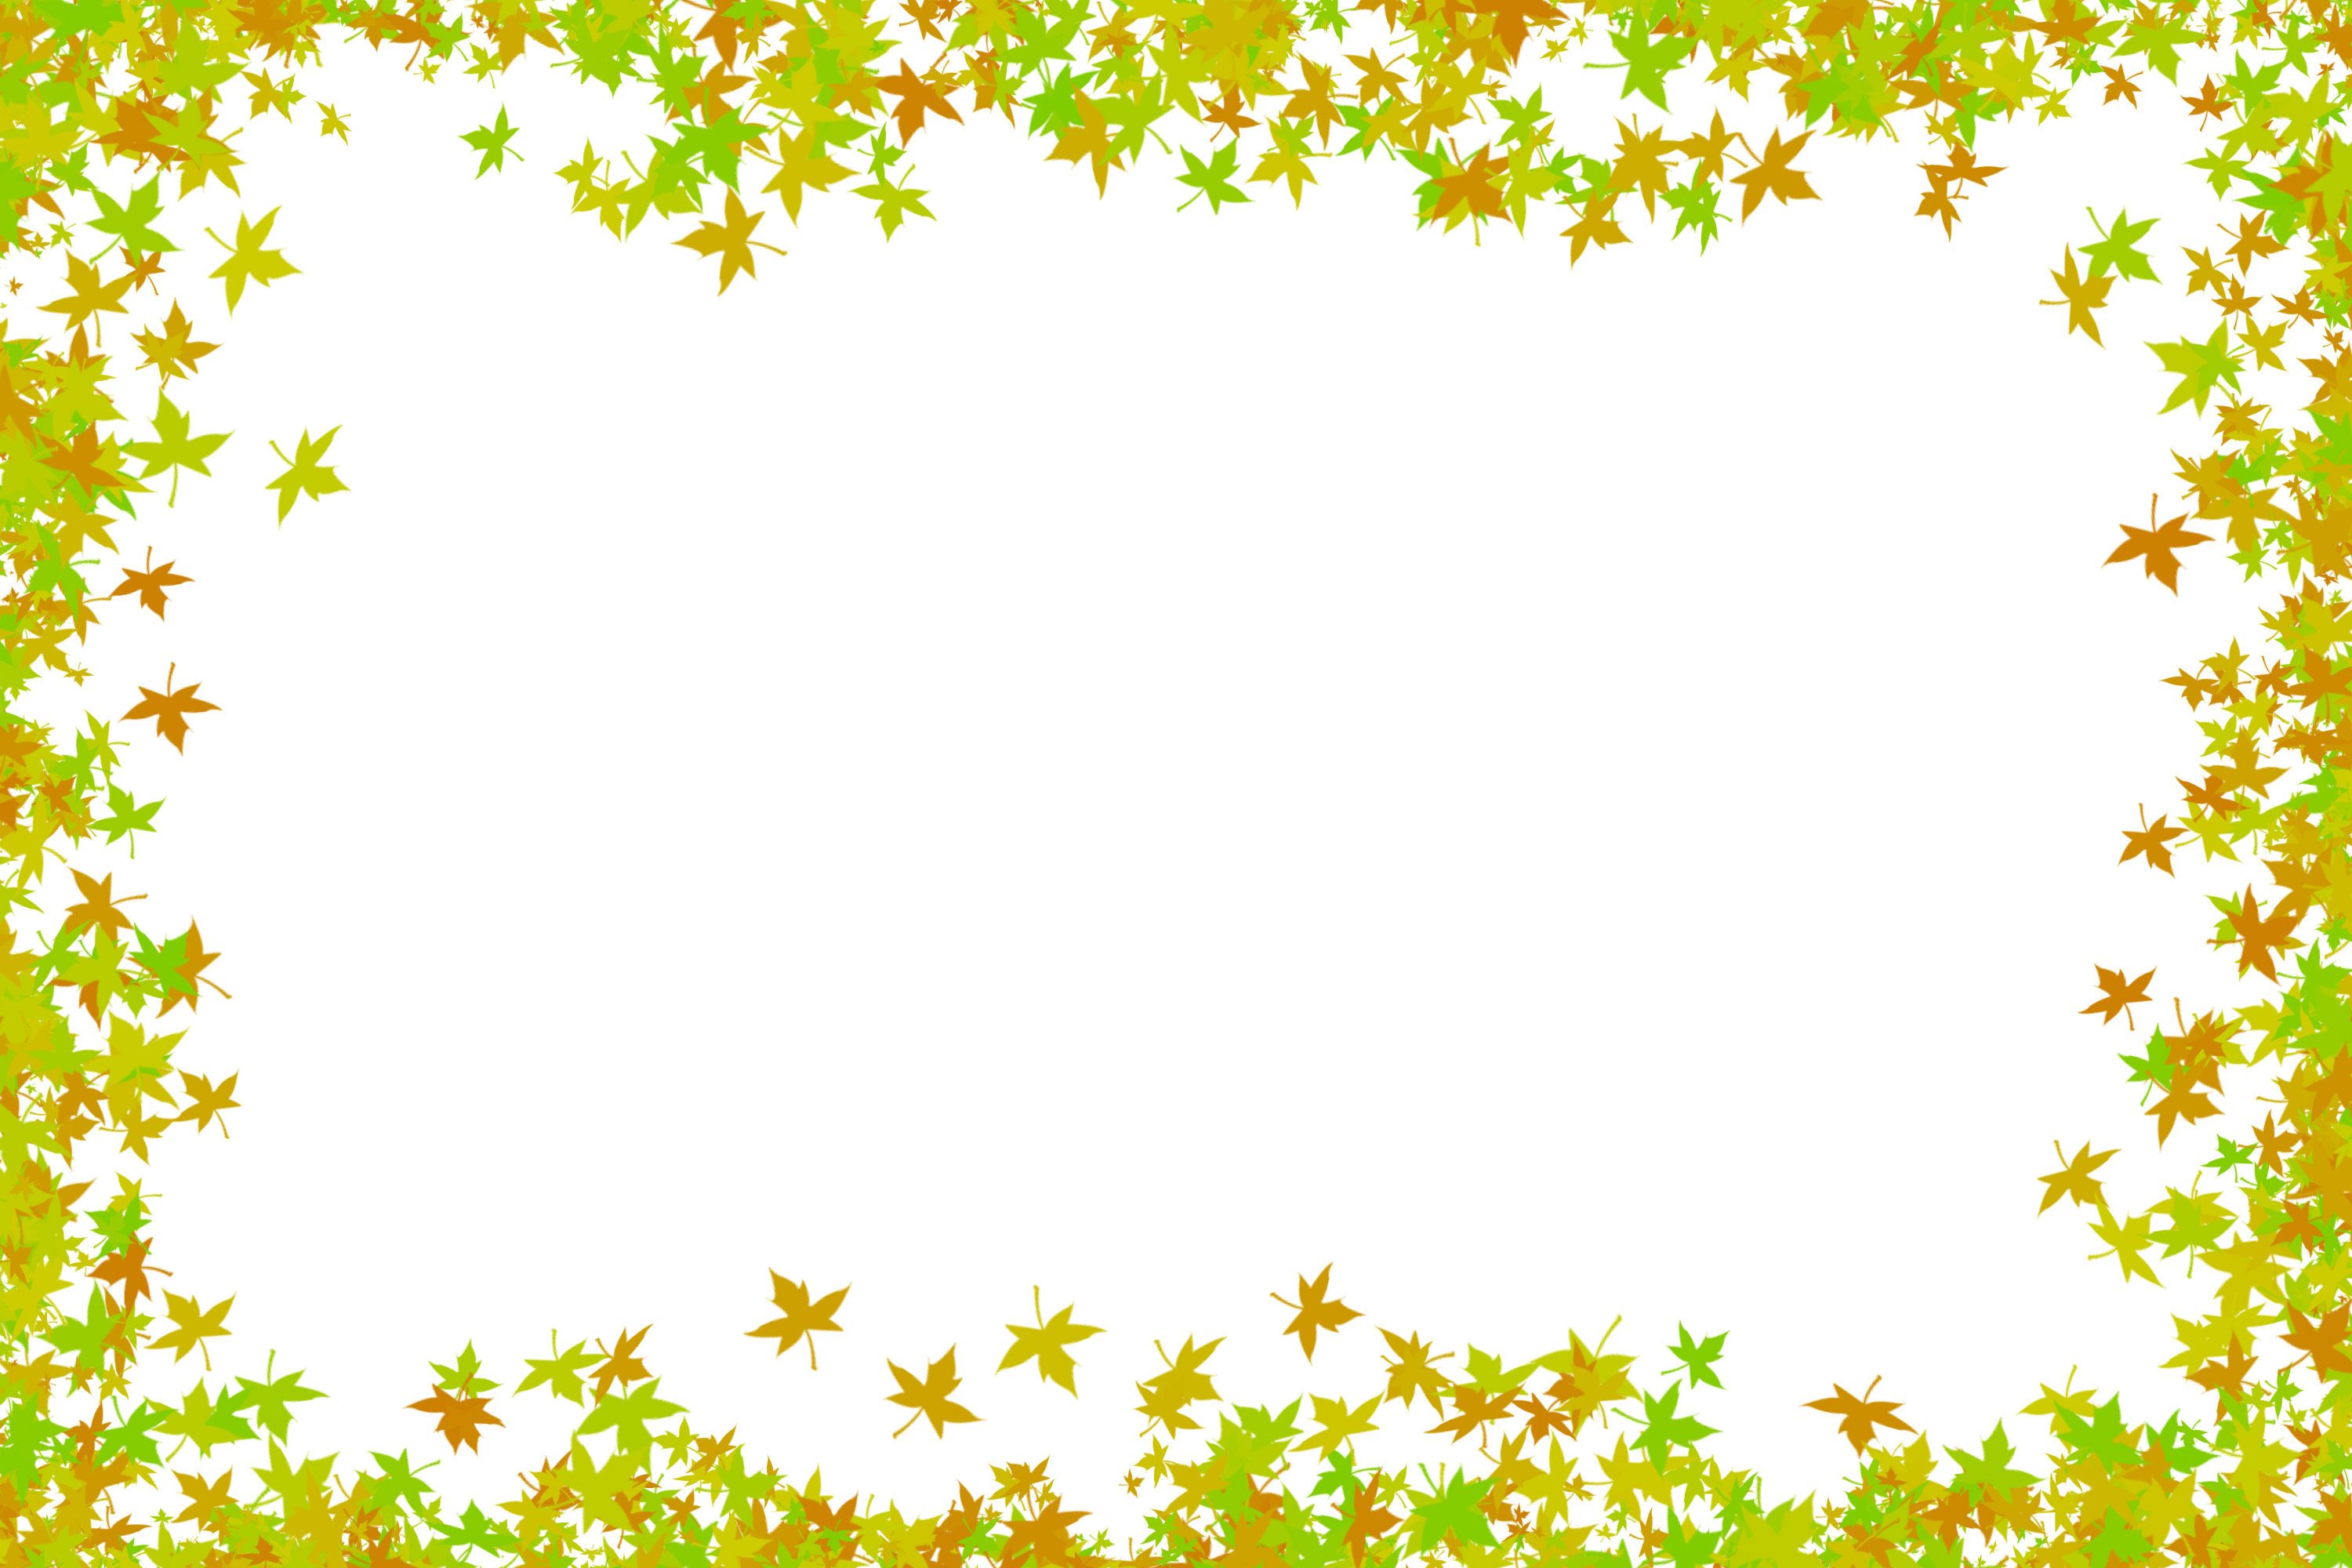 maple leaves frame | Free backgrounds and textures | Cr103.com